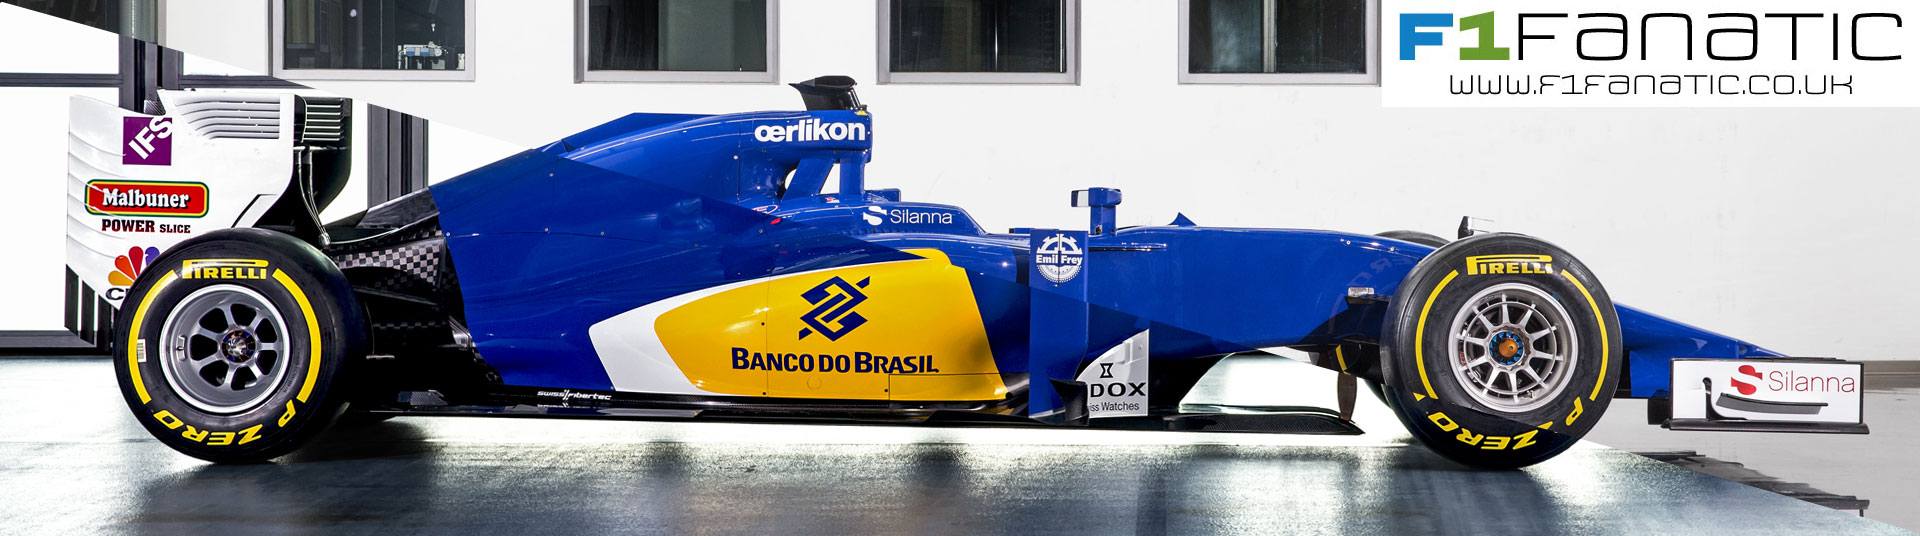 Sauber 2016 And 2017 Car Comparison